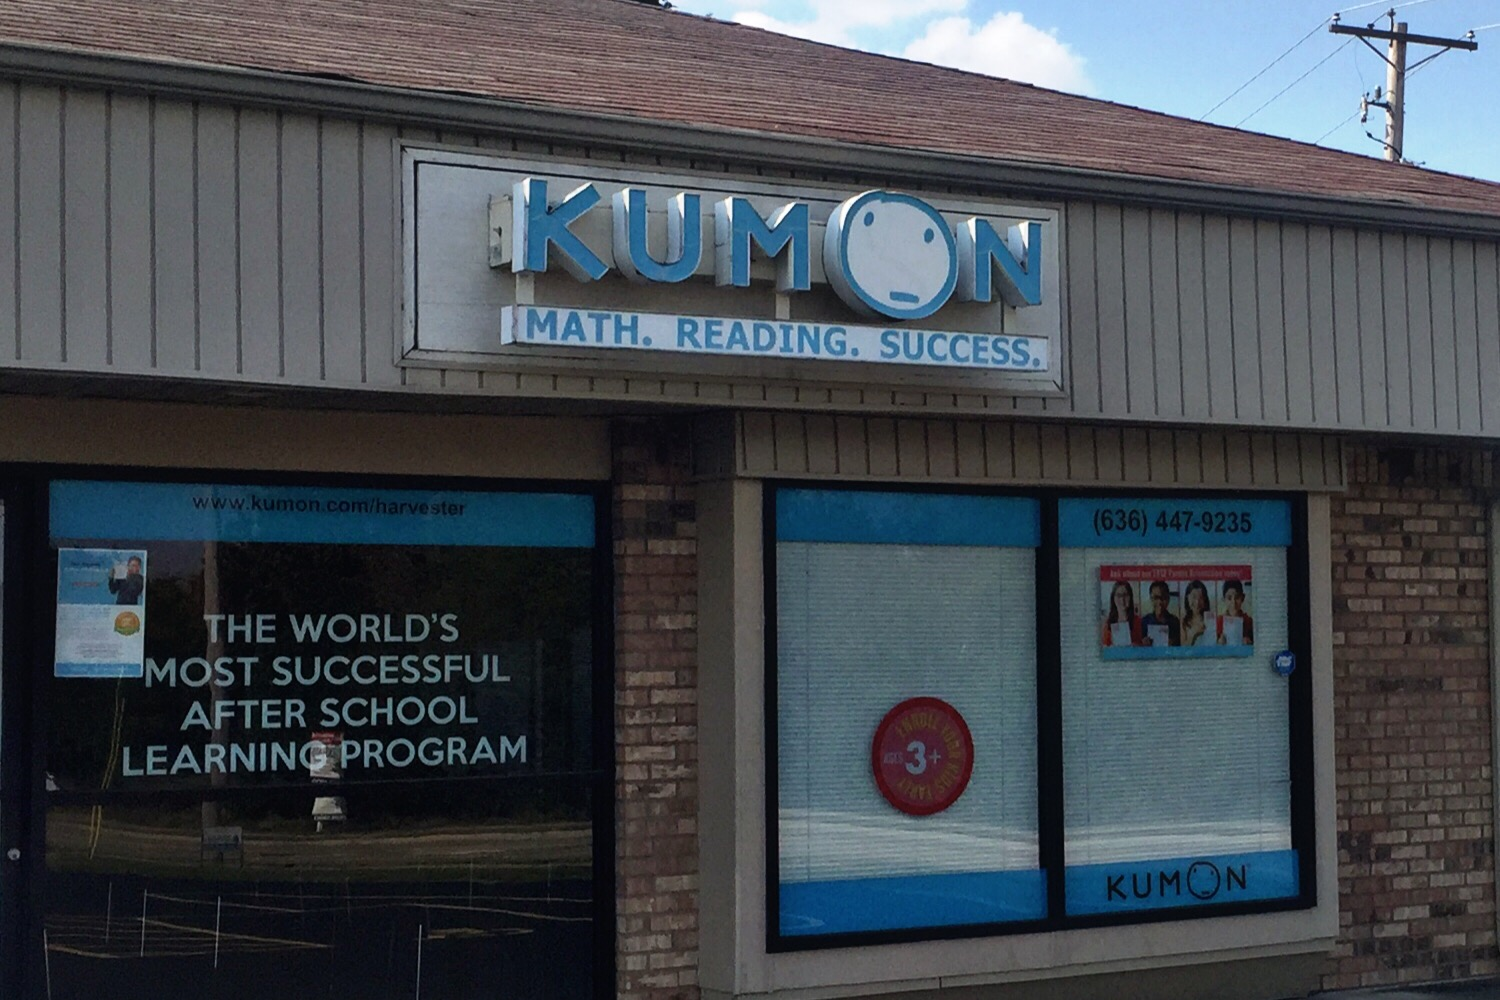 Kumon is open on Mondays and Thursdays for tutoring in math and reading. There are seven Kumon locations, less than 10 miles from FHN.